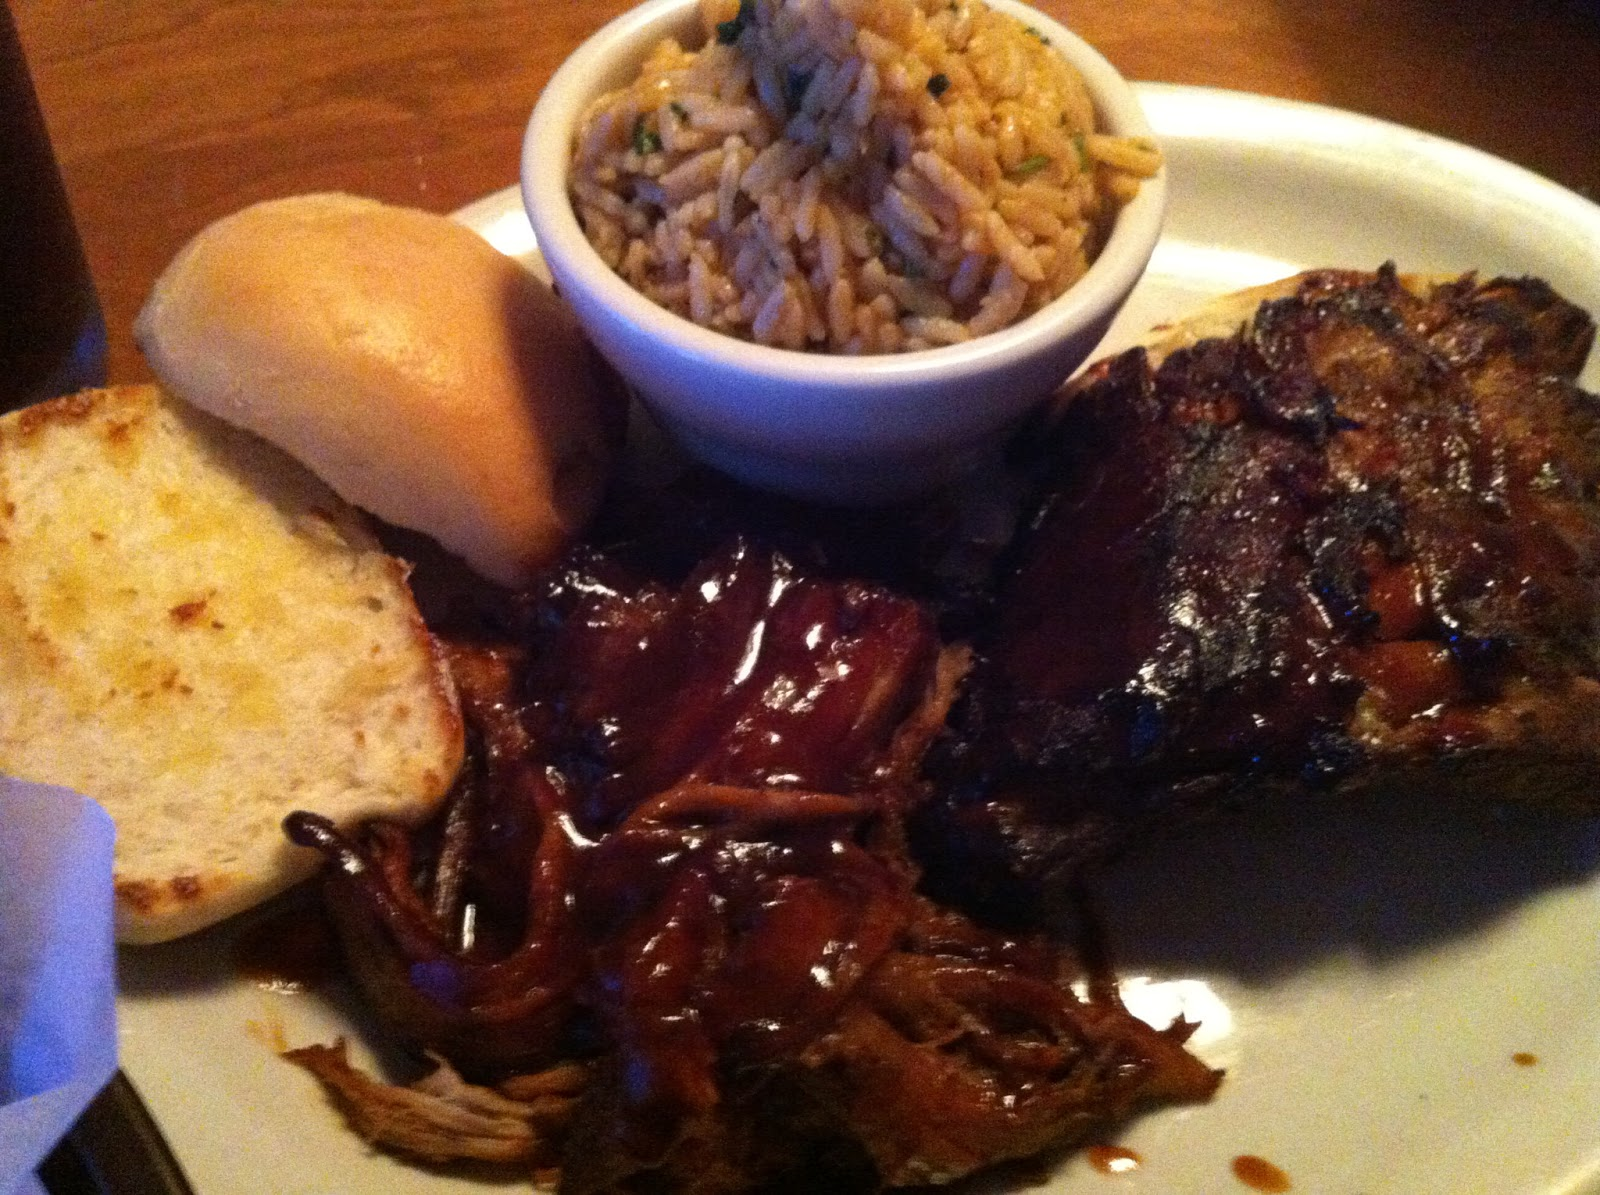 Texas Roadhouse Combo Ribs Pulled Pork BBQ Barbecue Barbeque Bar-B-Que